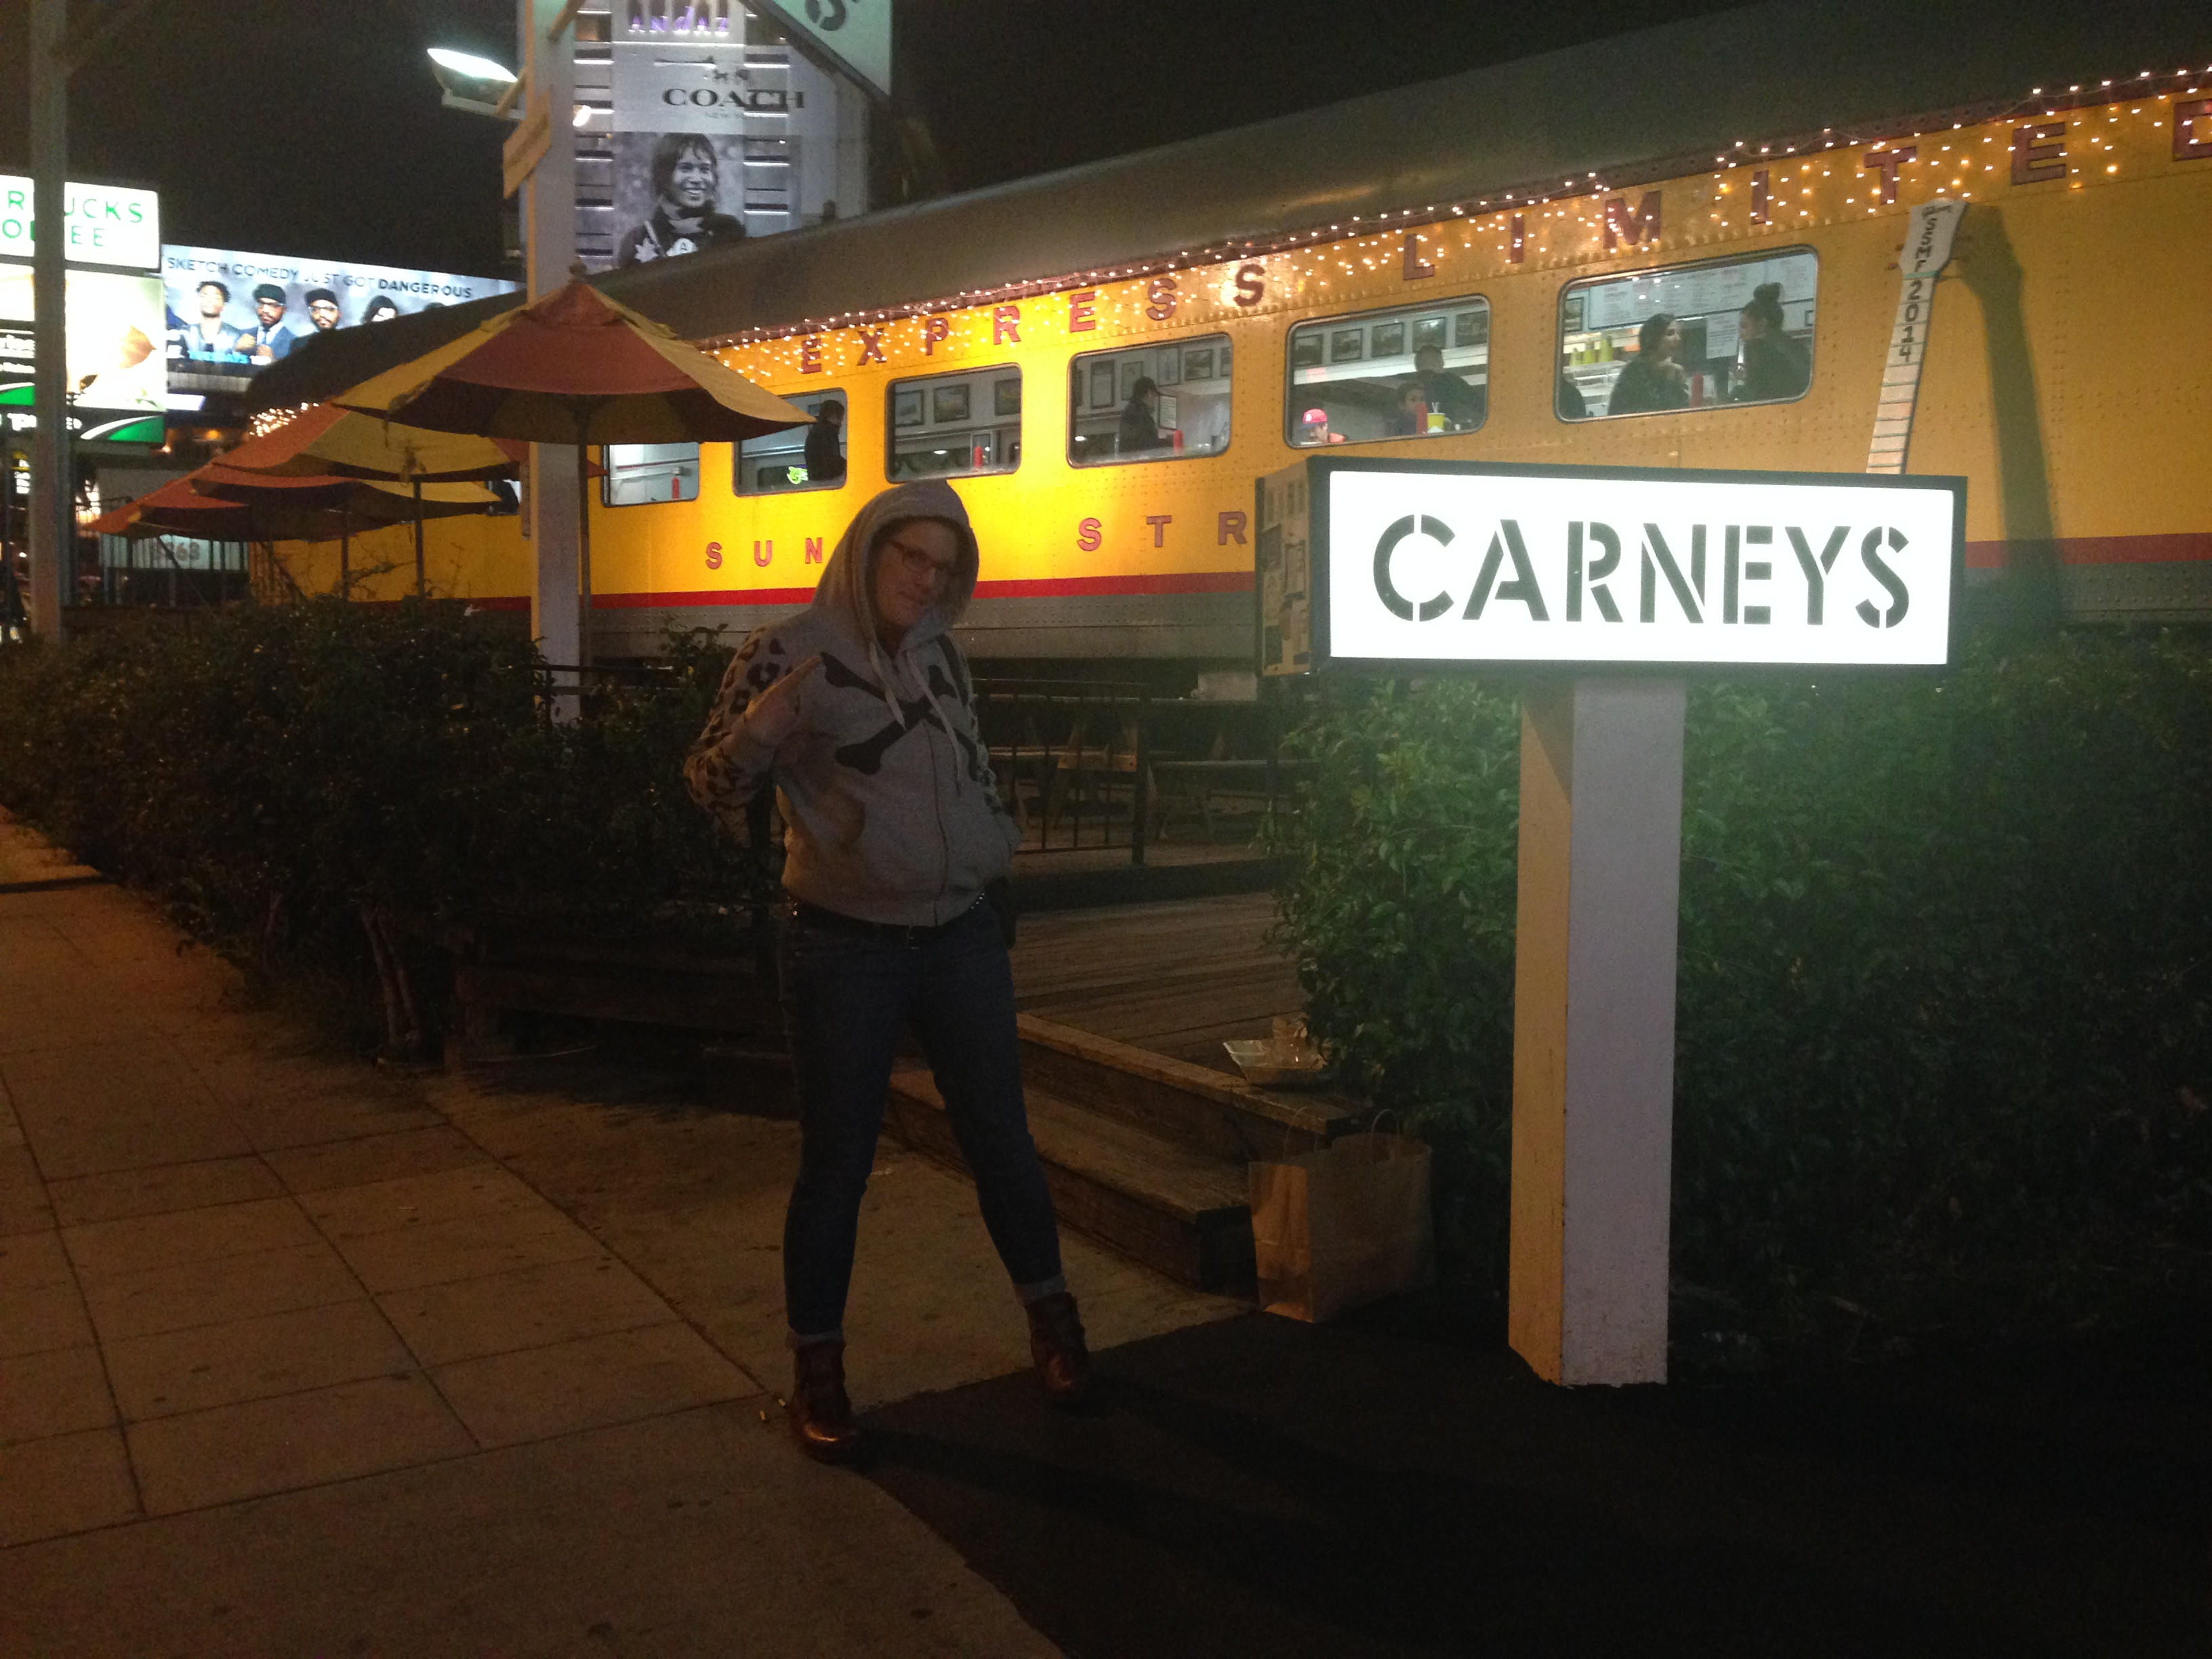 Carneys on Sunset Boulvard